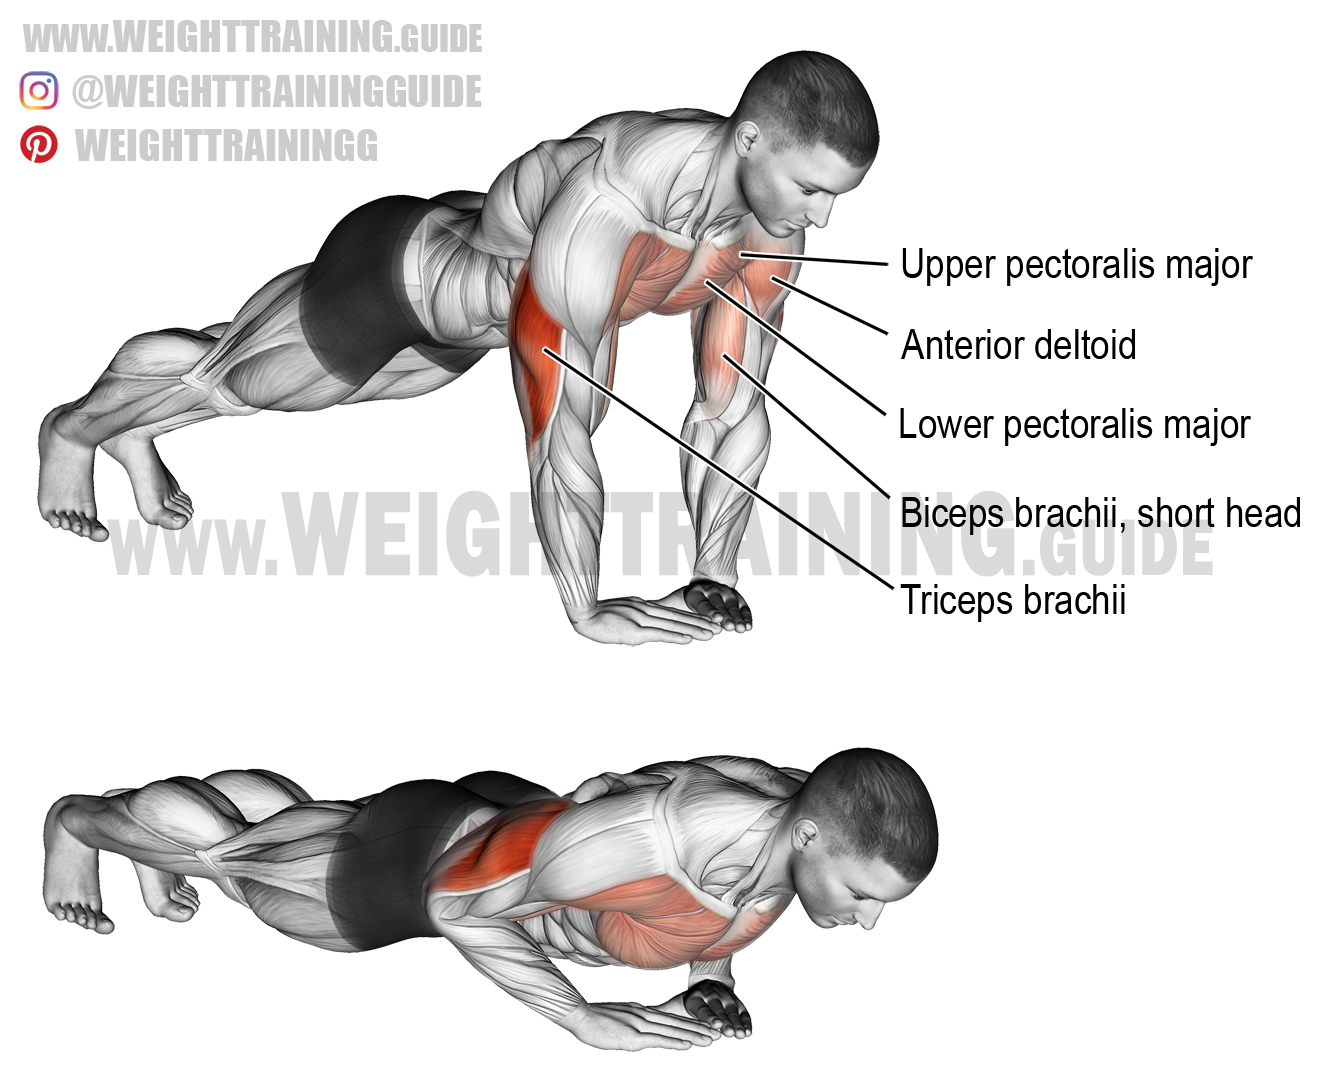 Diamond push-up exercise instructions and video | Fitnessübungen ...